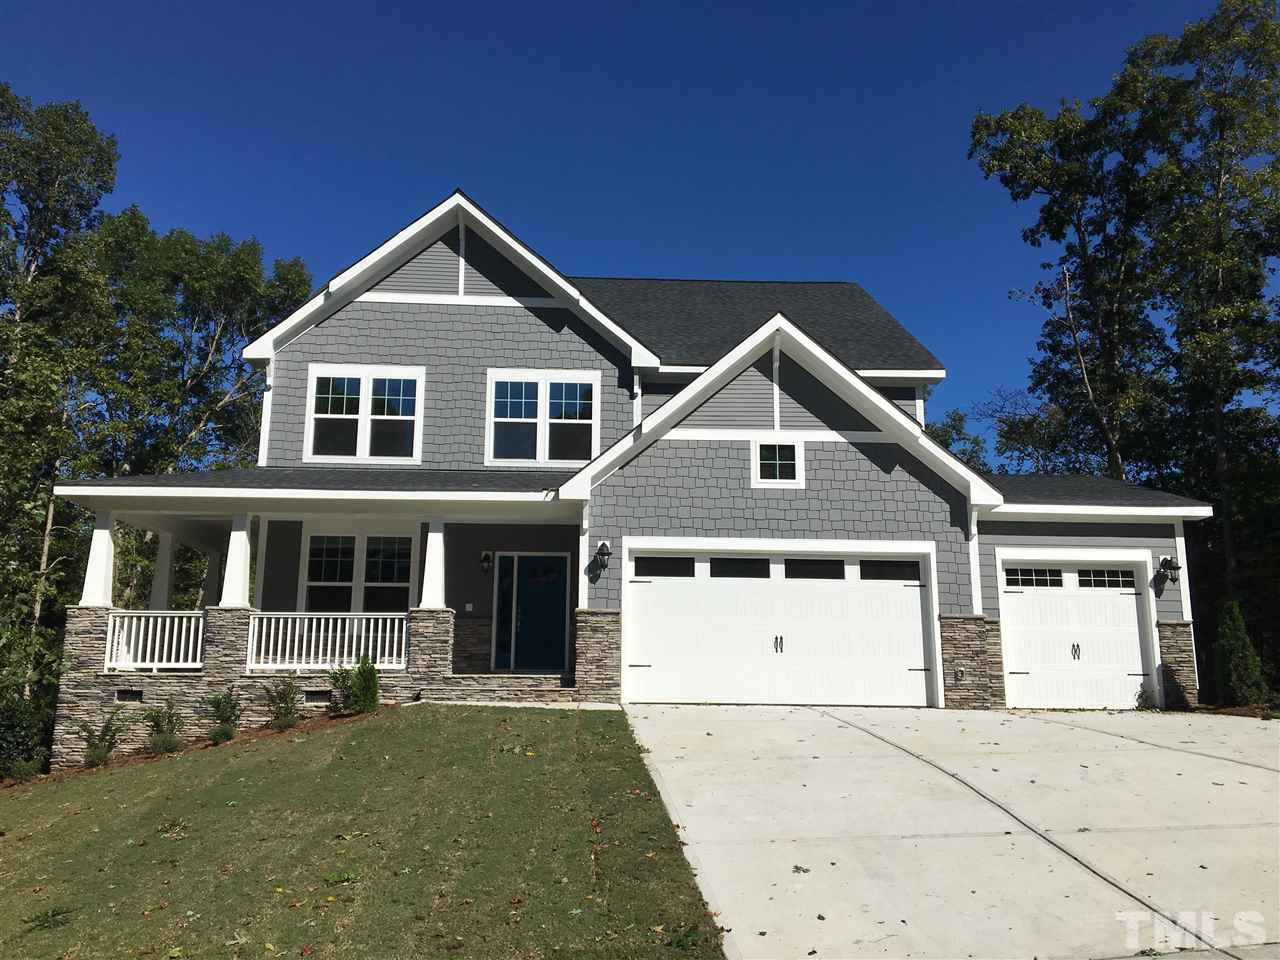 Property for sale at 516 Granite View Drive, Rolesville,  NC 27571